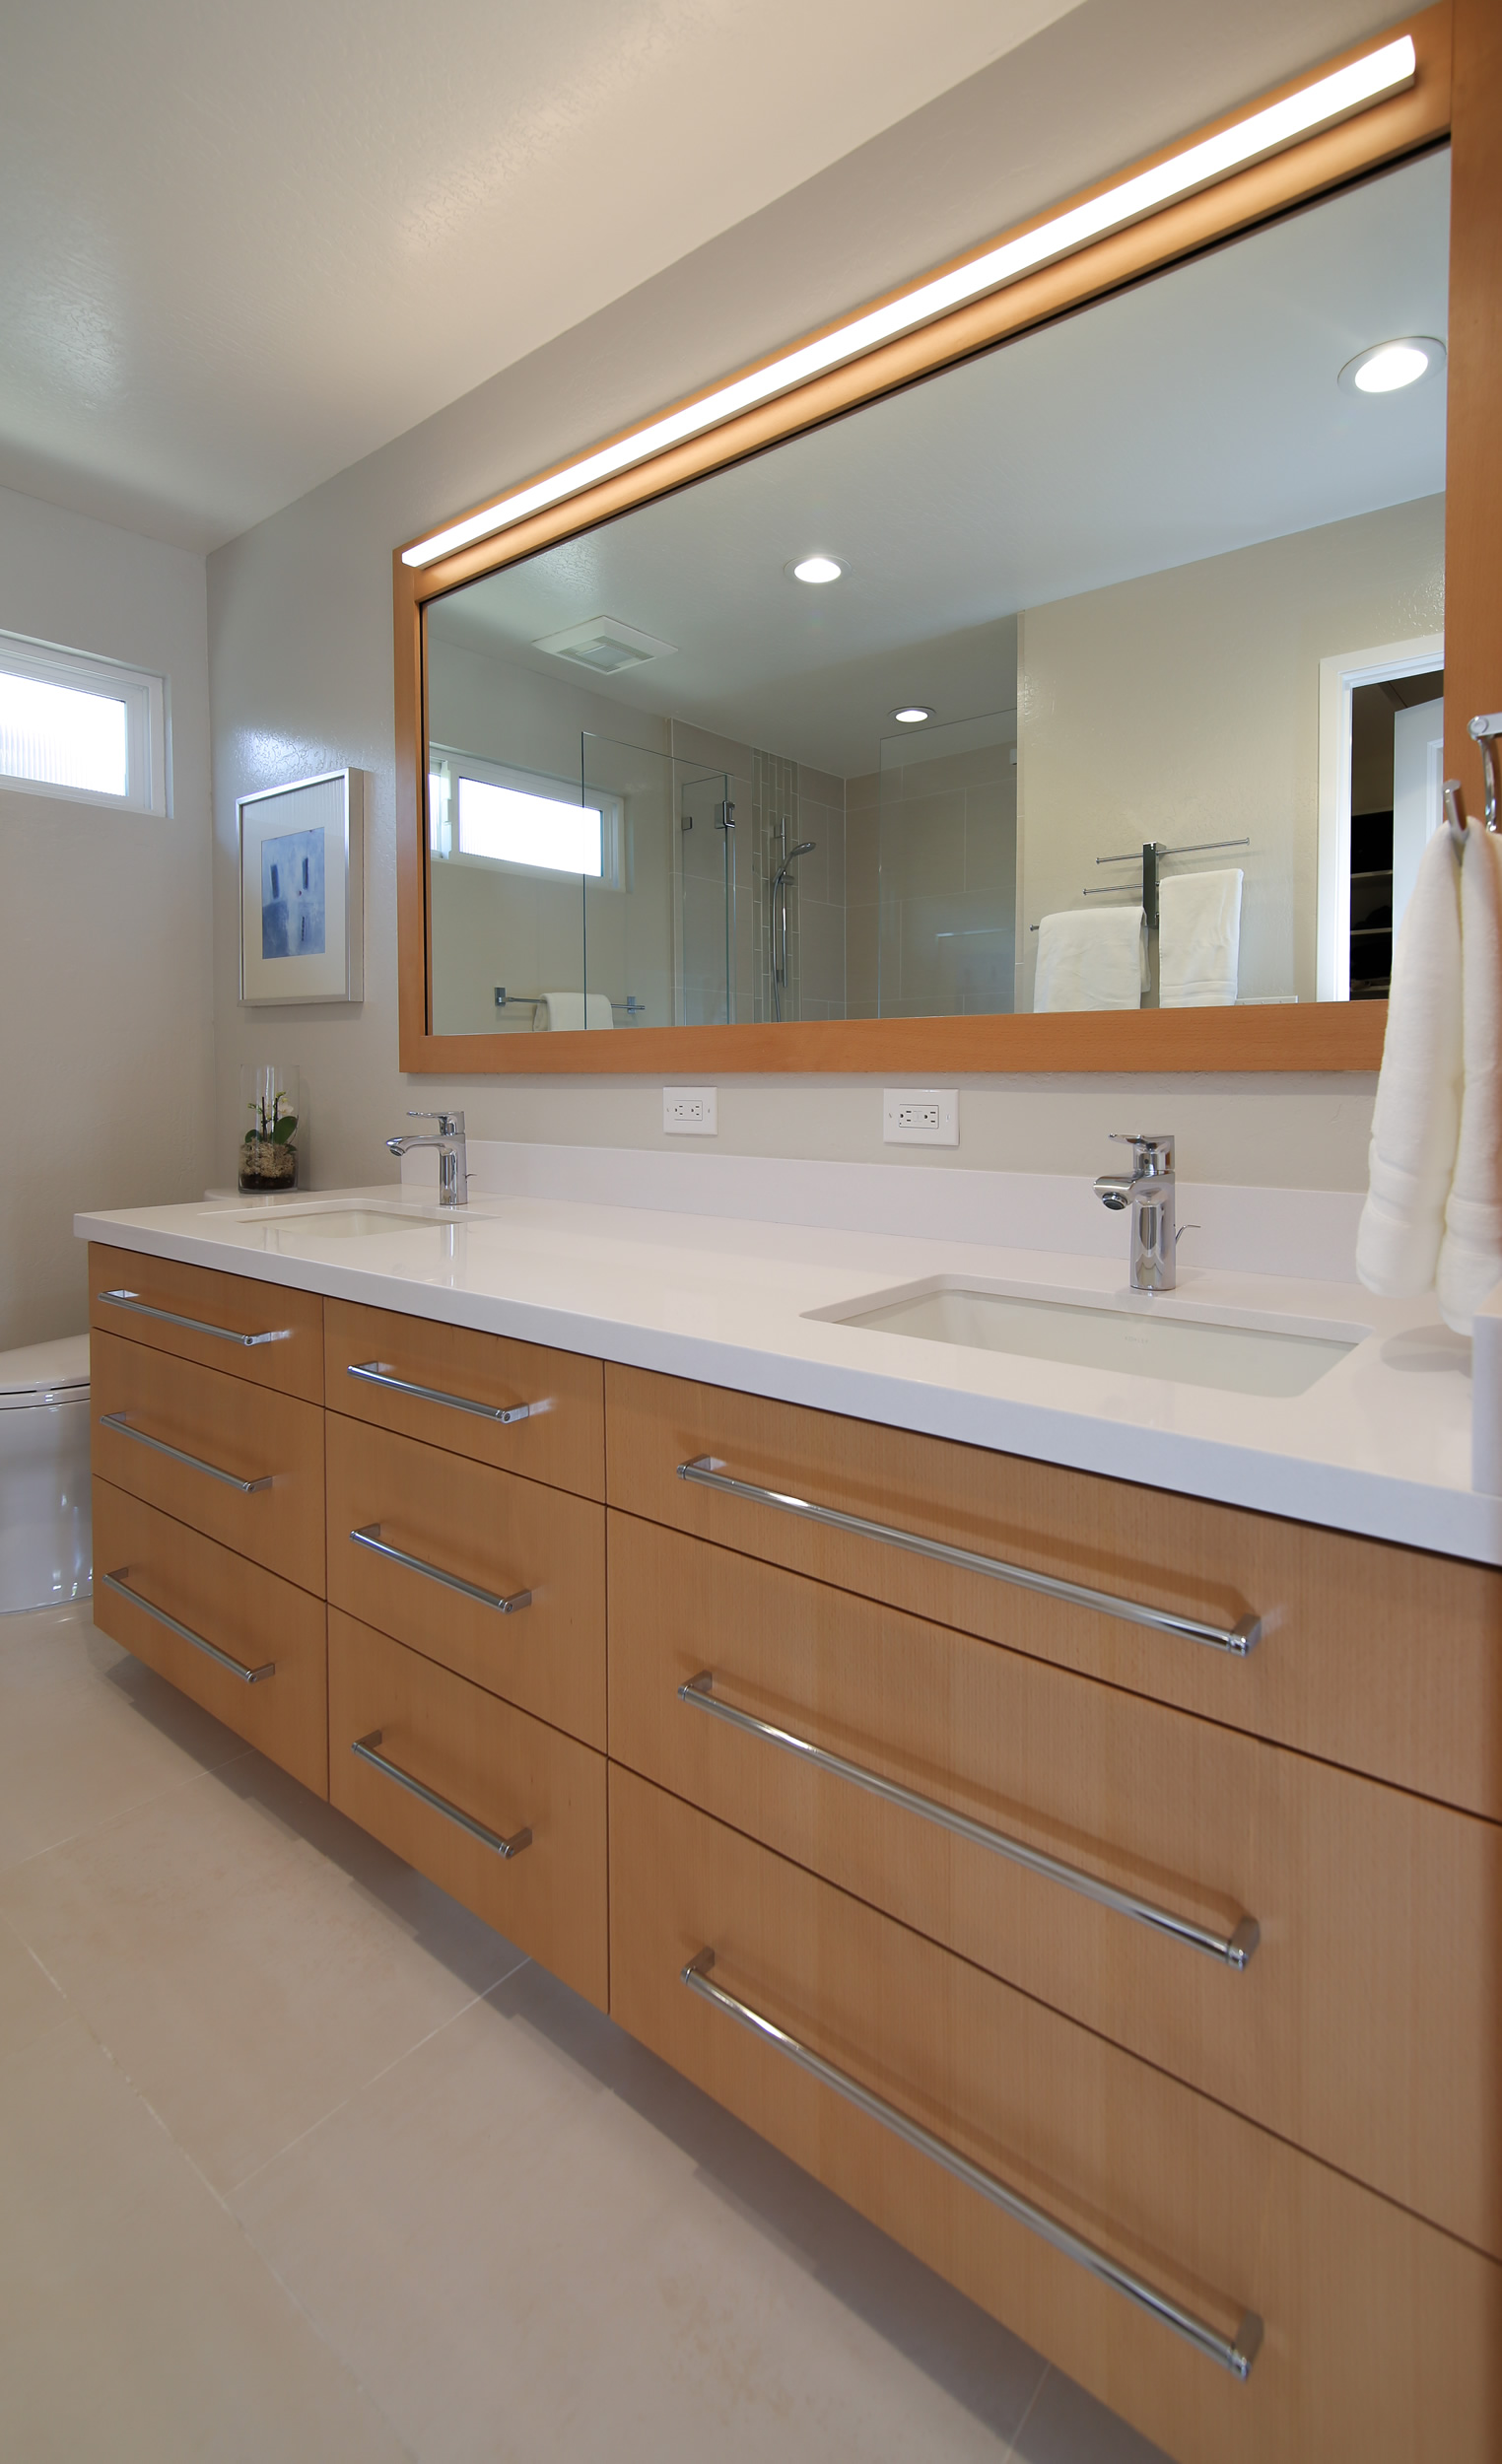 Kitchen bathroom and home remodeling gallery cage for Master bathroom countertops